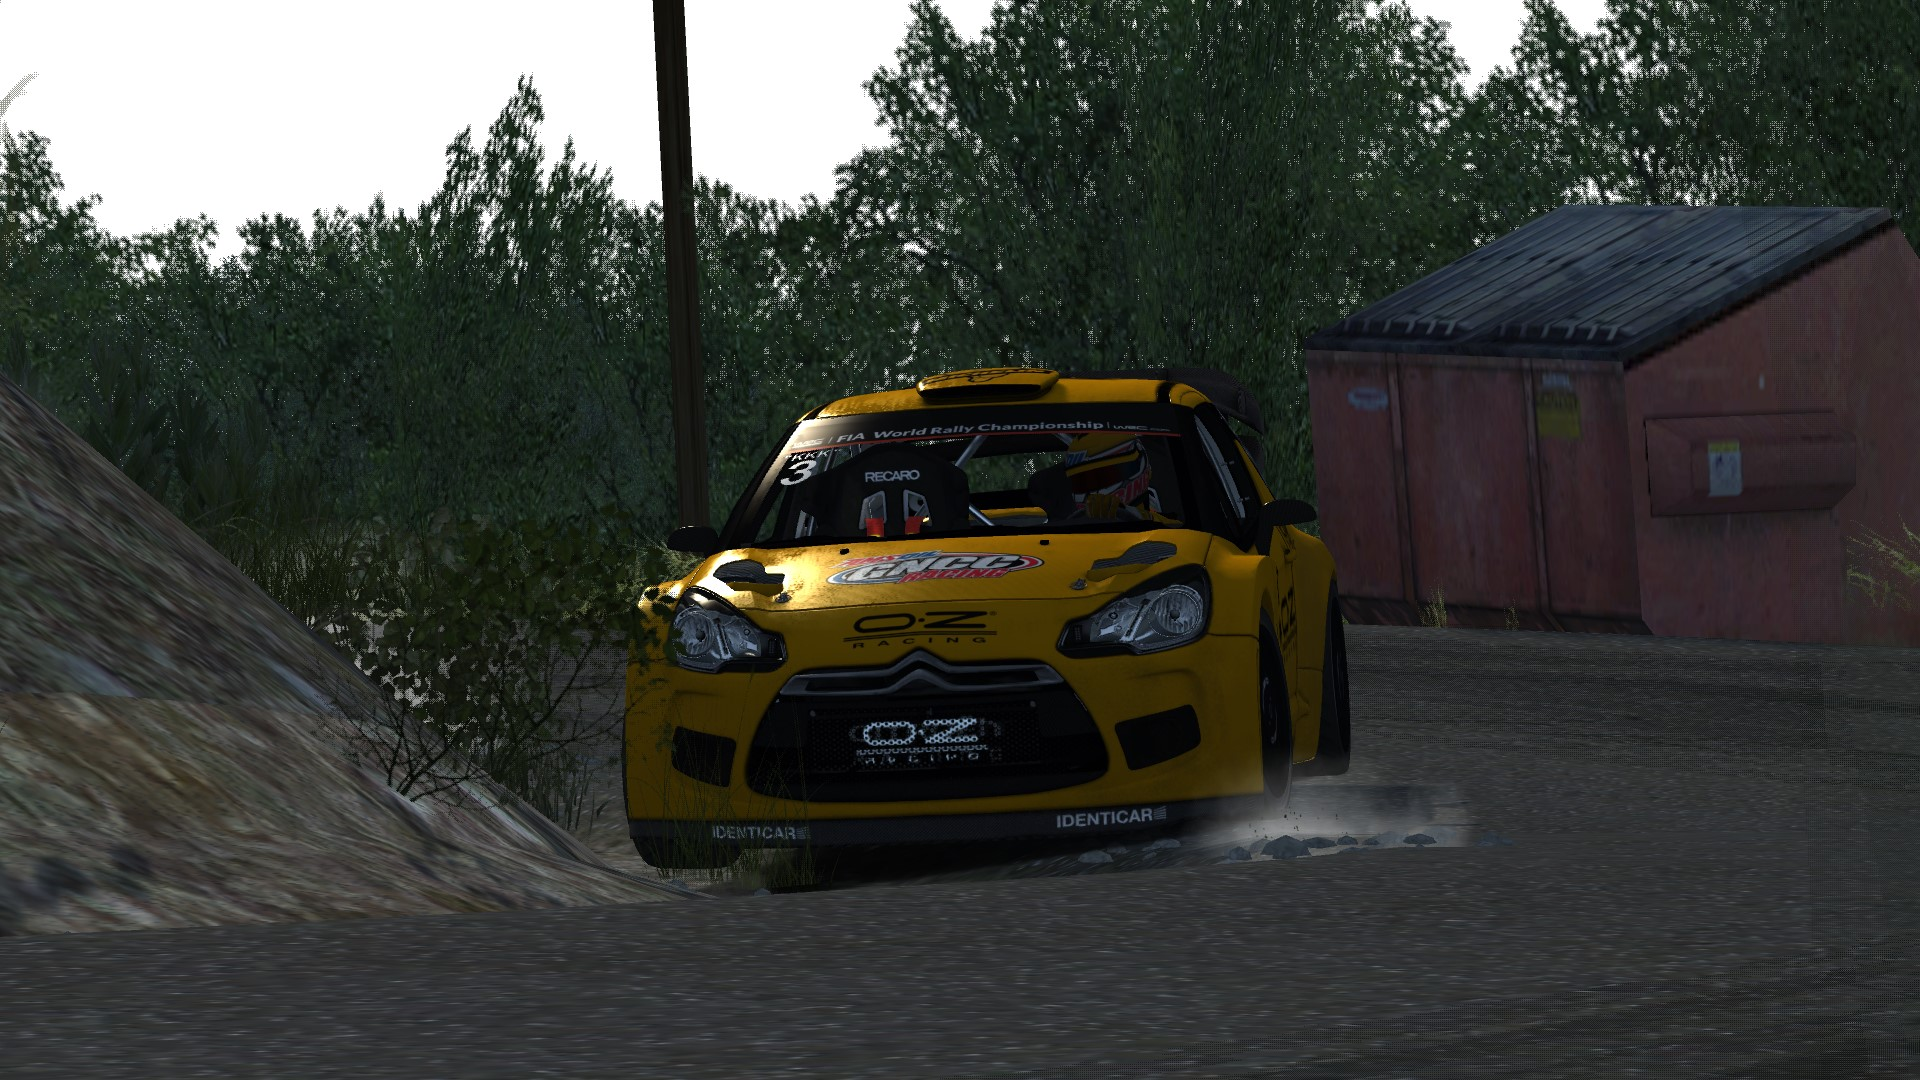 Screenshot_ds3_wrc_2015_hillclimb_moya_20-2-116-21-46-25.jpg